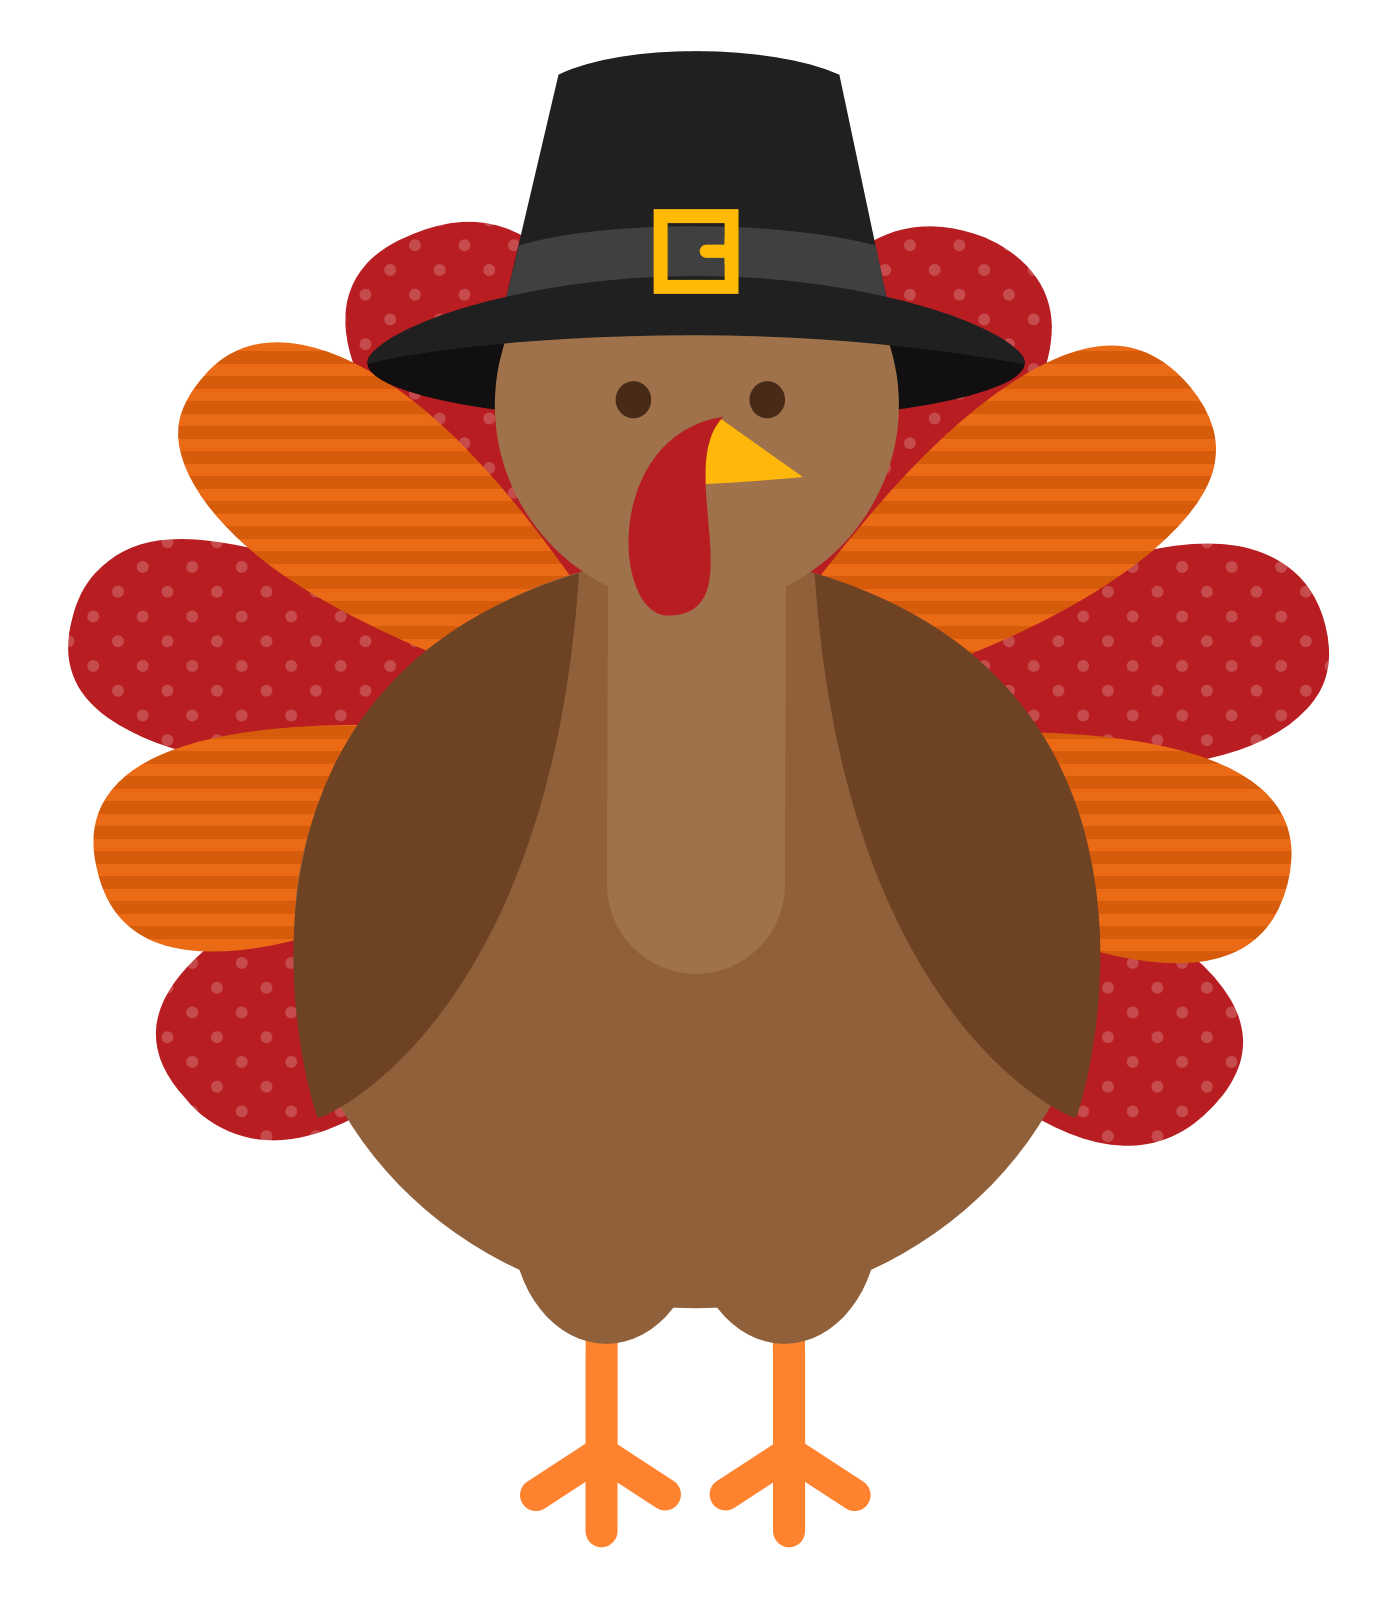 Png turkey. Thanksgiving free icons and